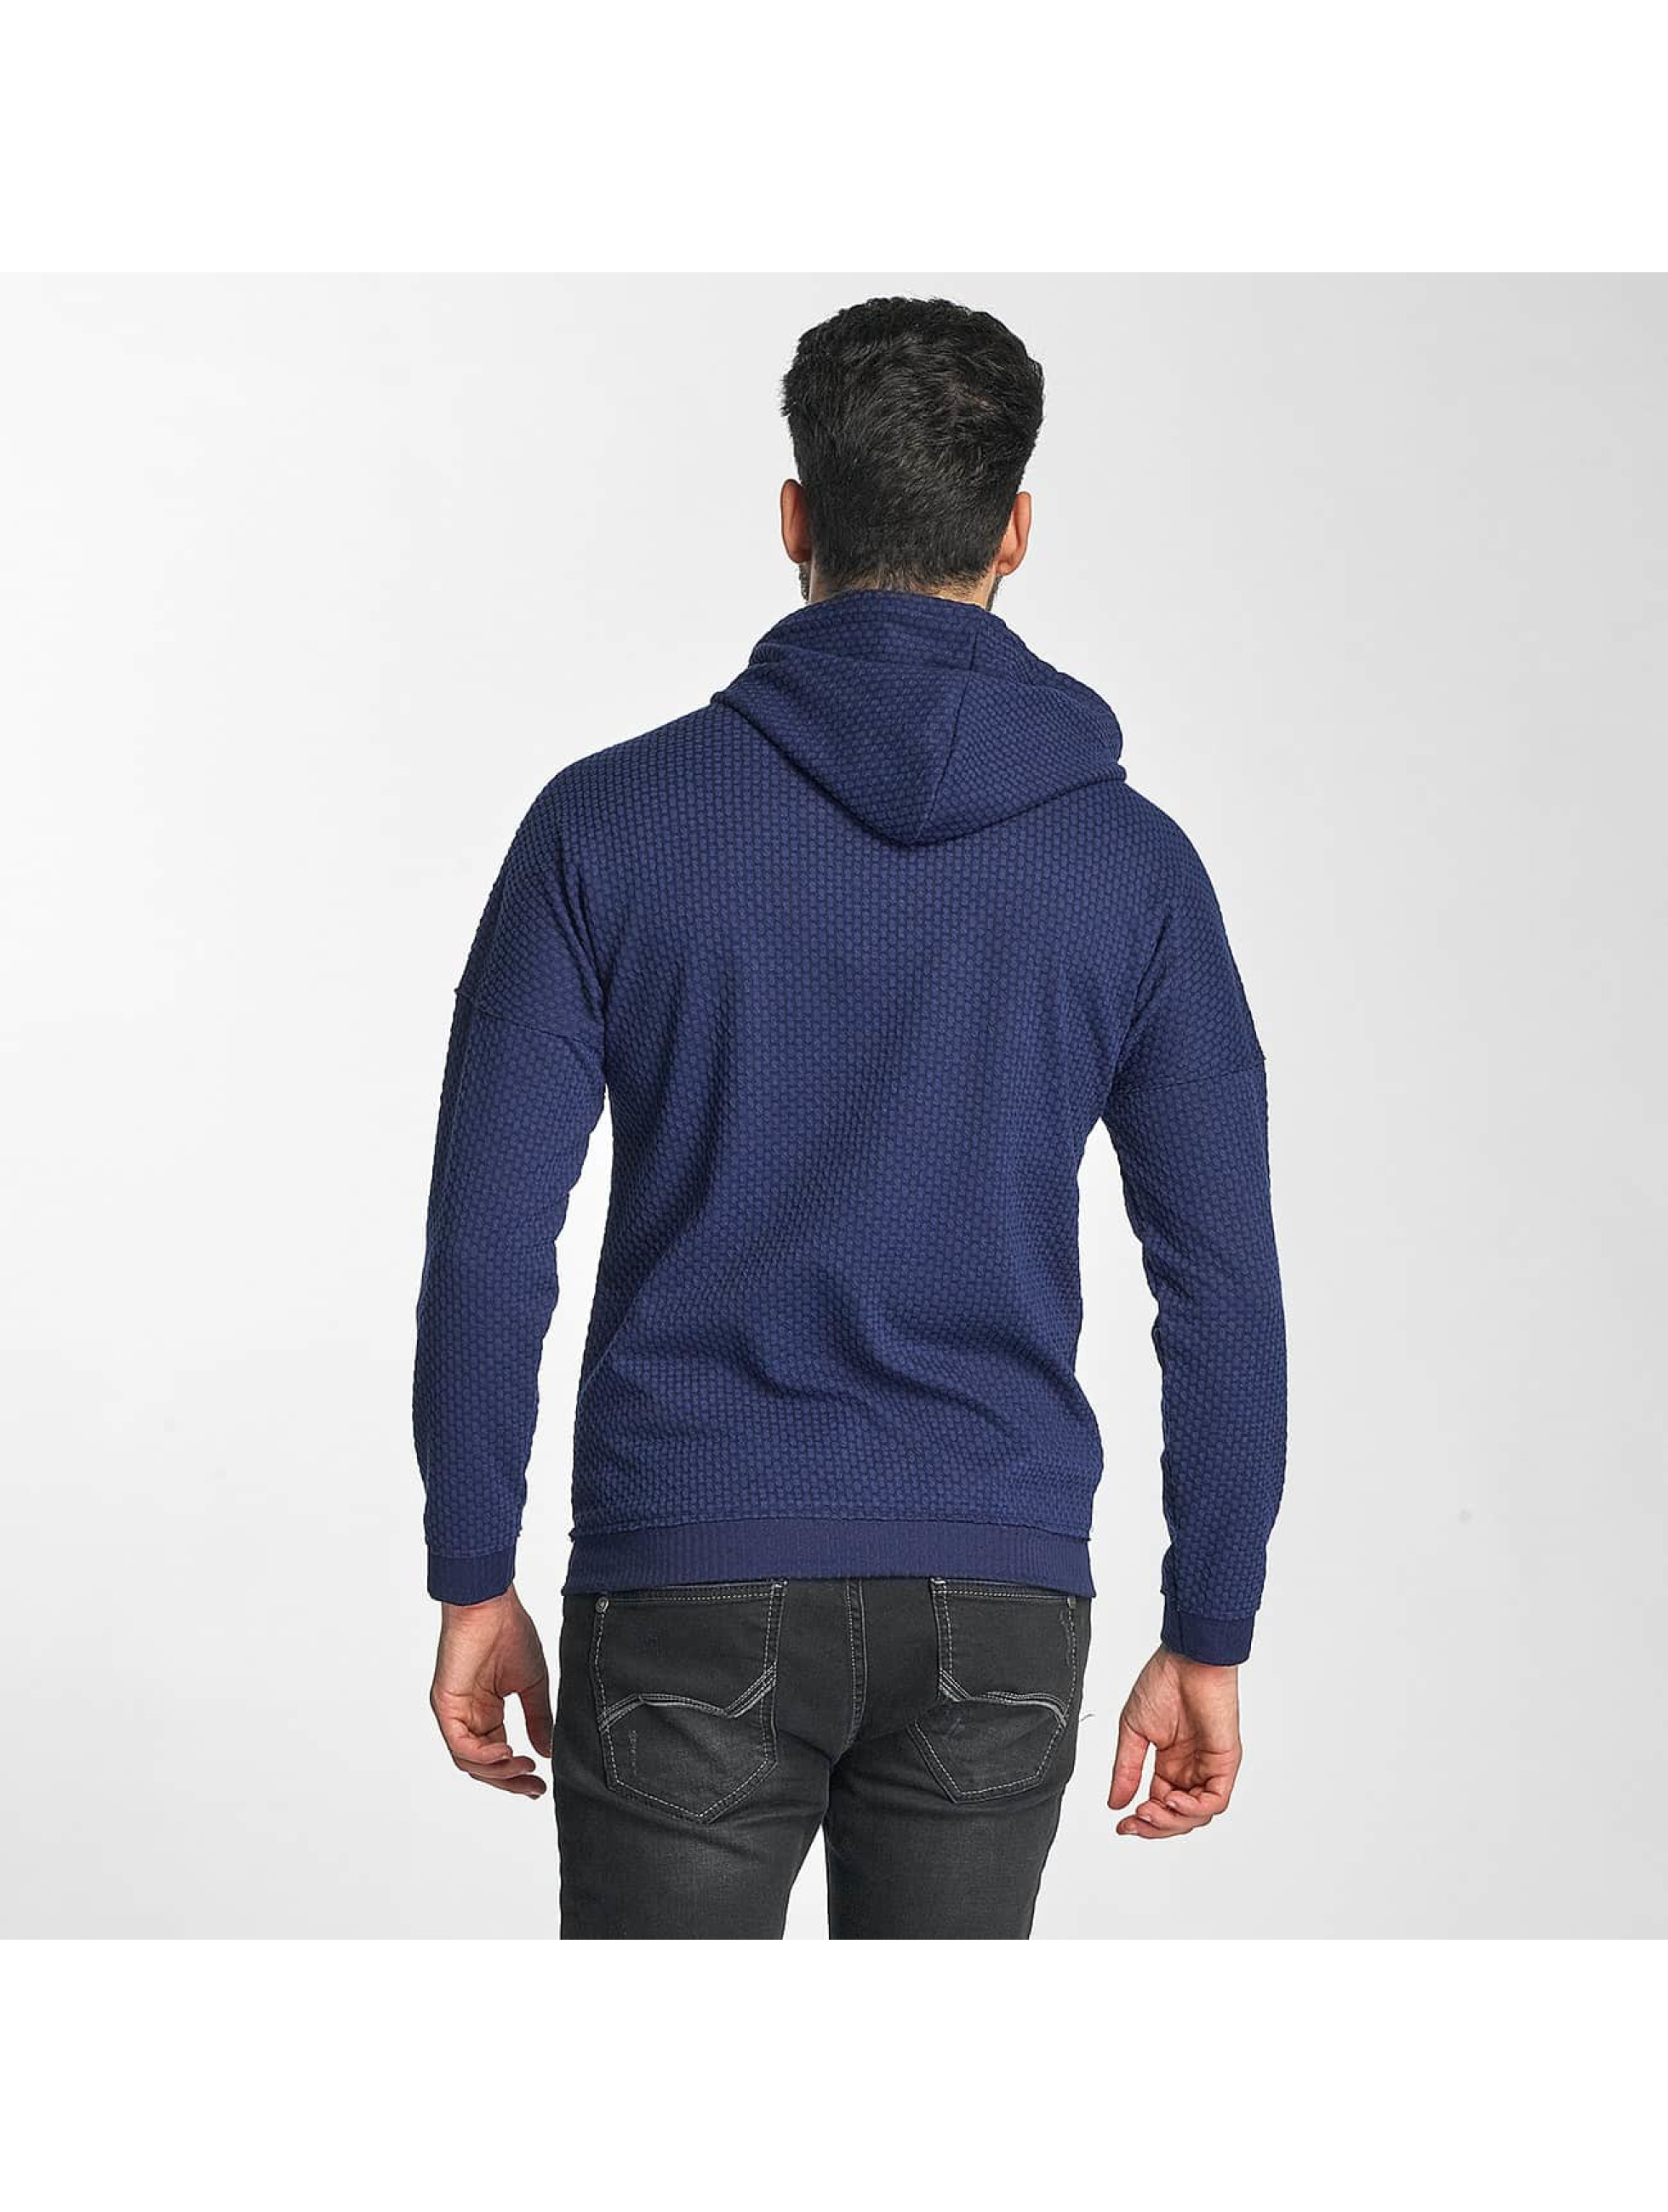 Red Bridge Hoodie Nameless Faces blue